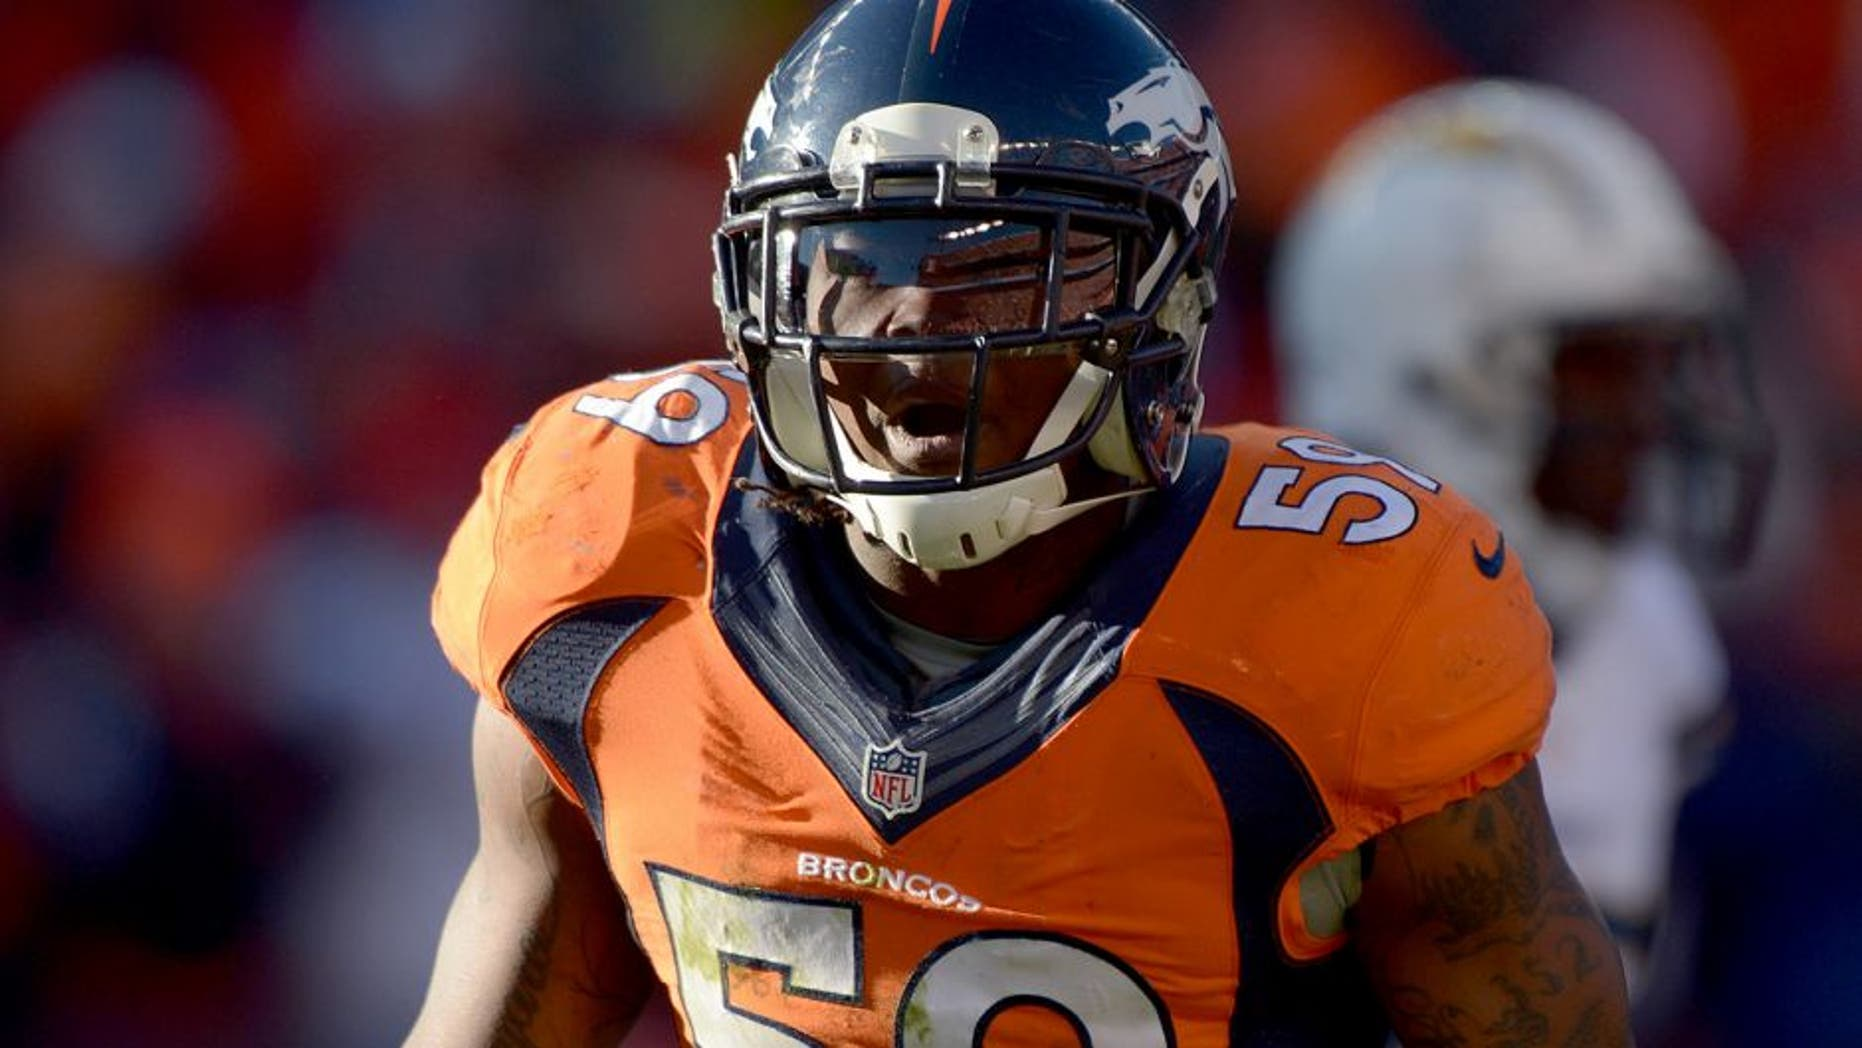 Jan 12, 2014; Denver, CO, USA; Denver Broncos linebacker Danny Trevathan (59) during the 2013 AFC divisional playoff football game against the San Diego Chargers at Sports Authority Field at Mile High. Mandatory Credit: Kirby Lee-USA TODAY Sports